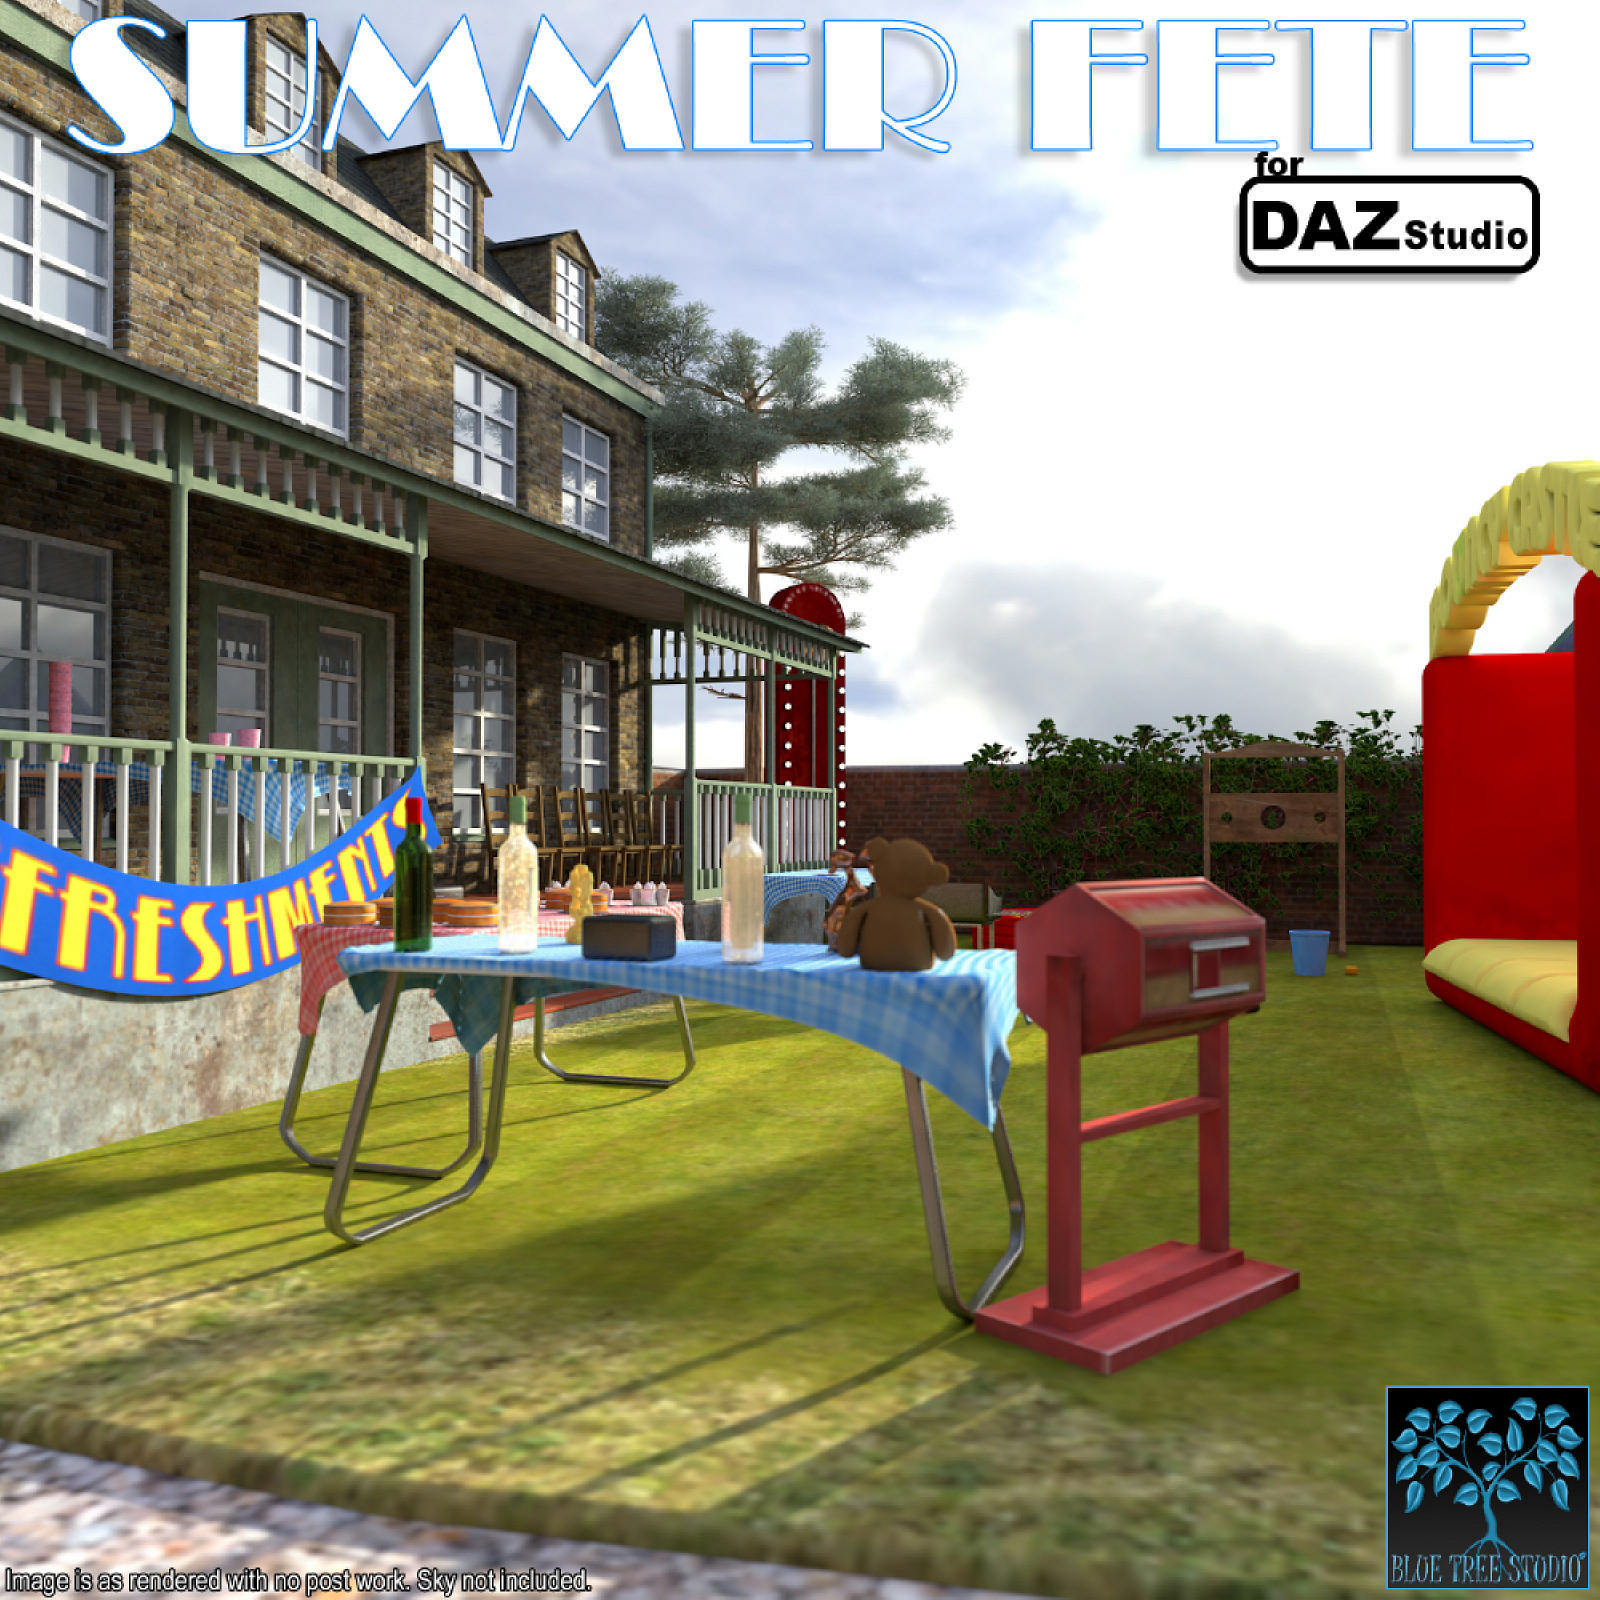 Summer Fete for Daz Studio by BlueTreeStudio